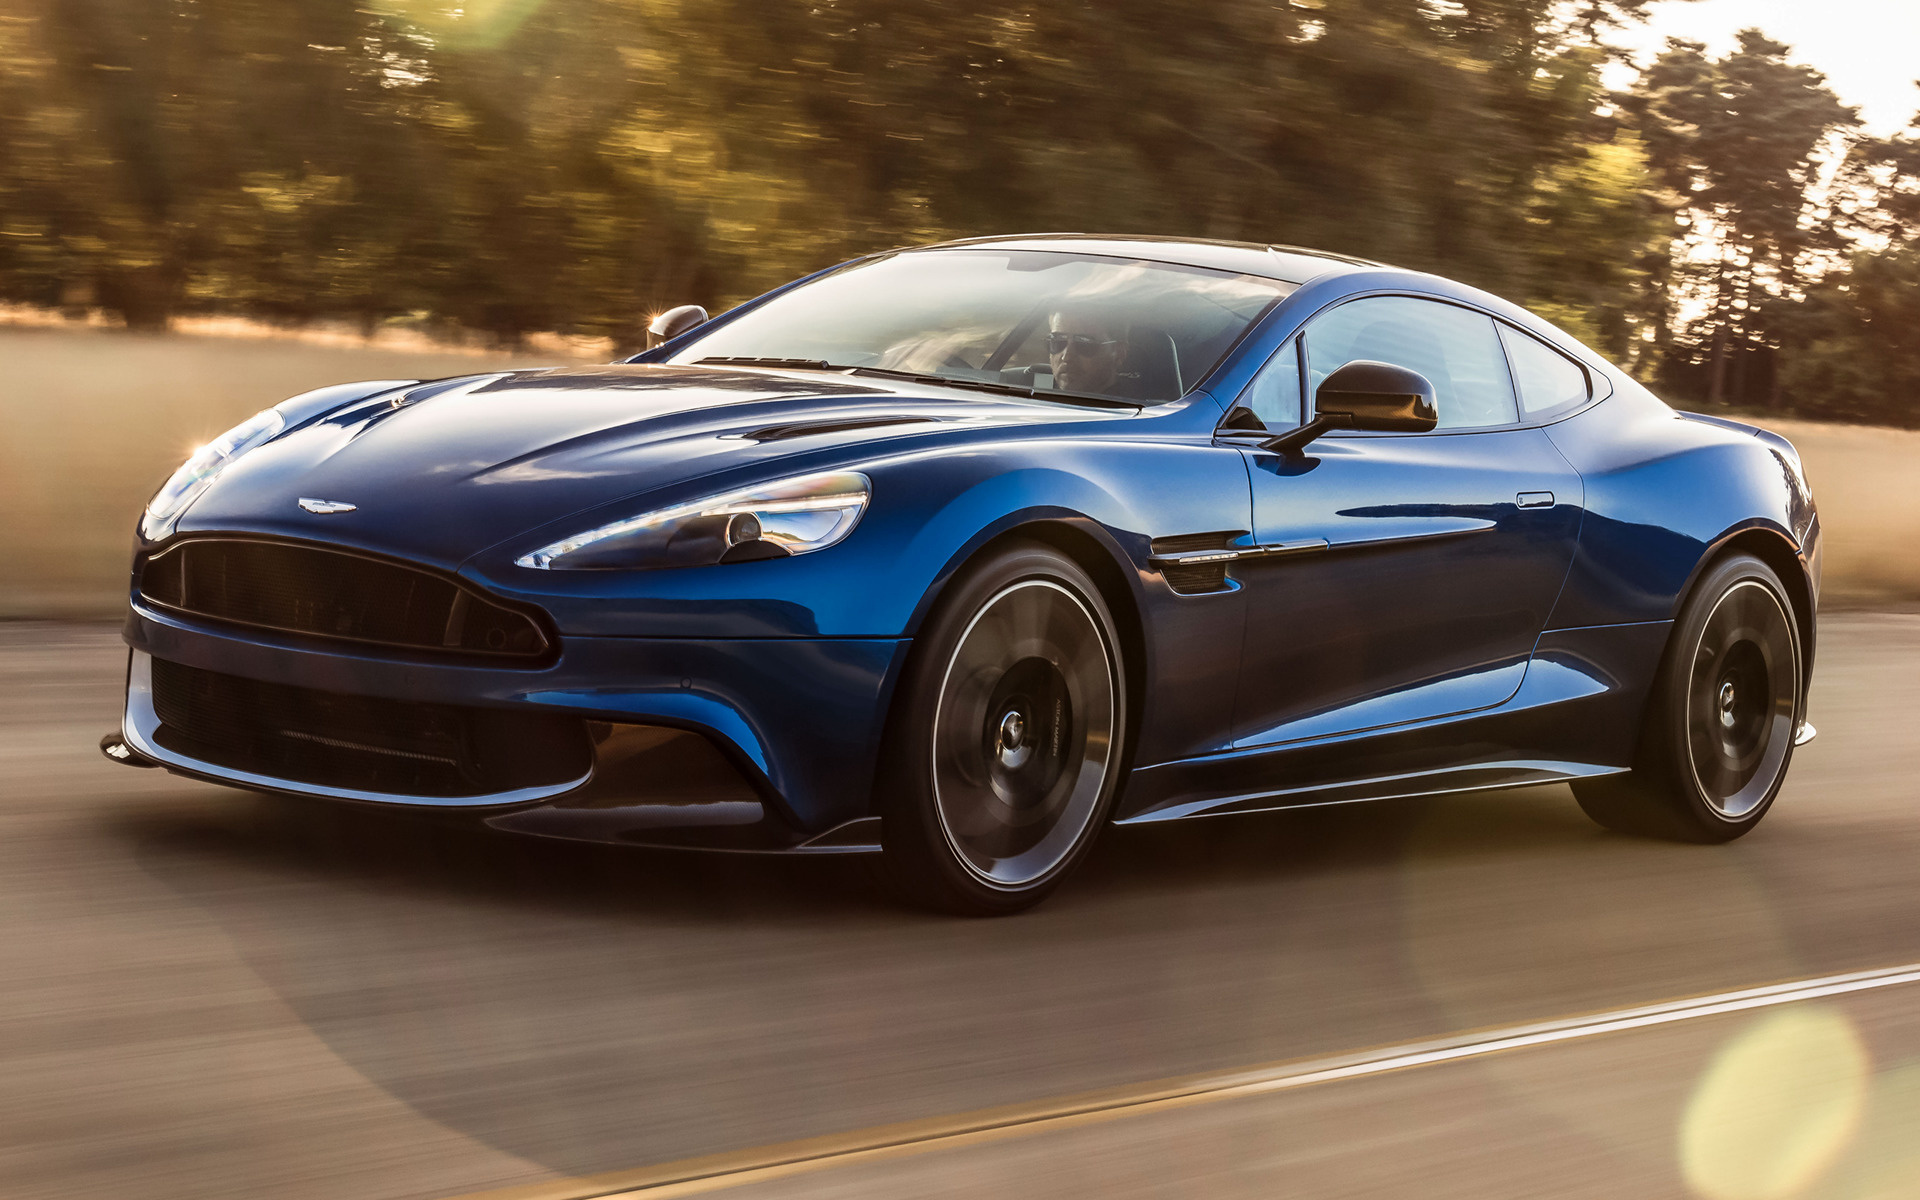 Aston Martin Vanquish S (2017) UK Wallpapers and HD Images ...